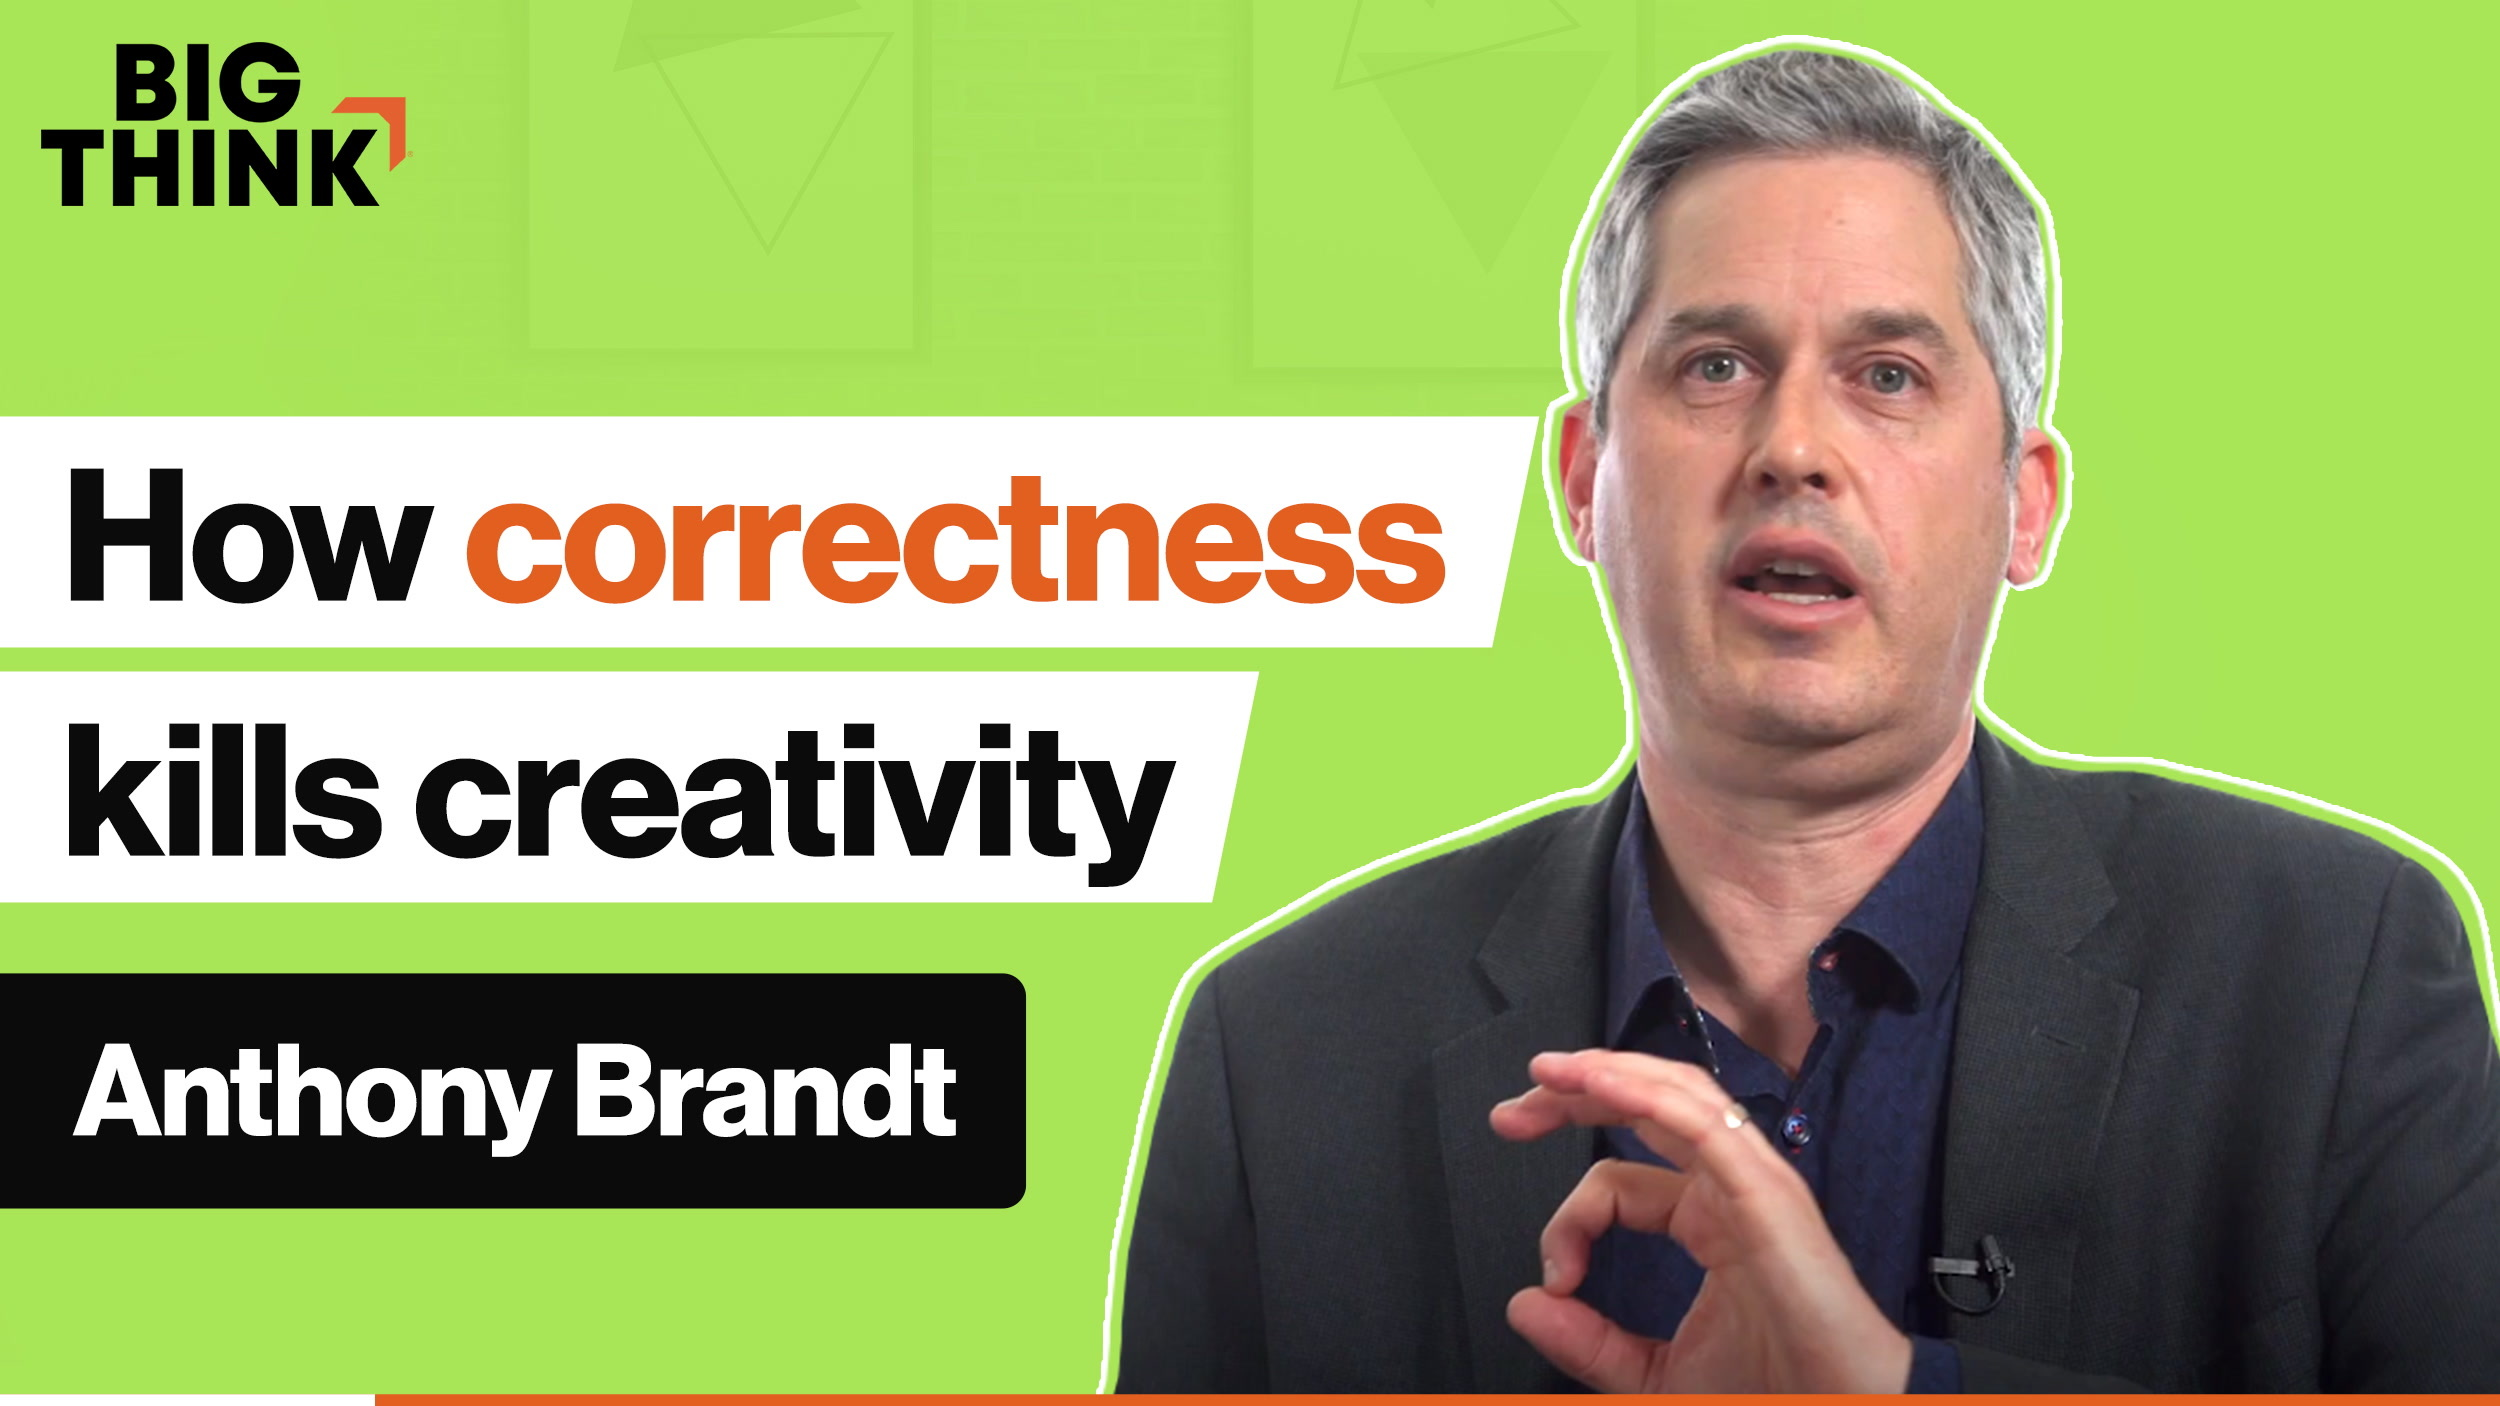 Correctness makes you less creative. Here's why.